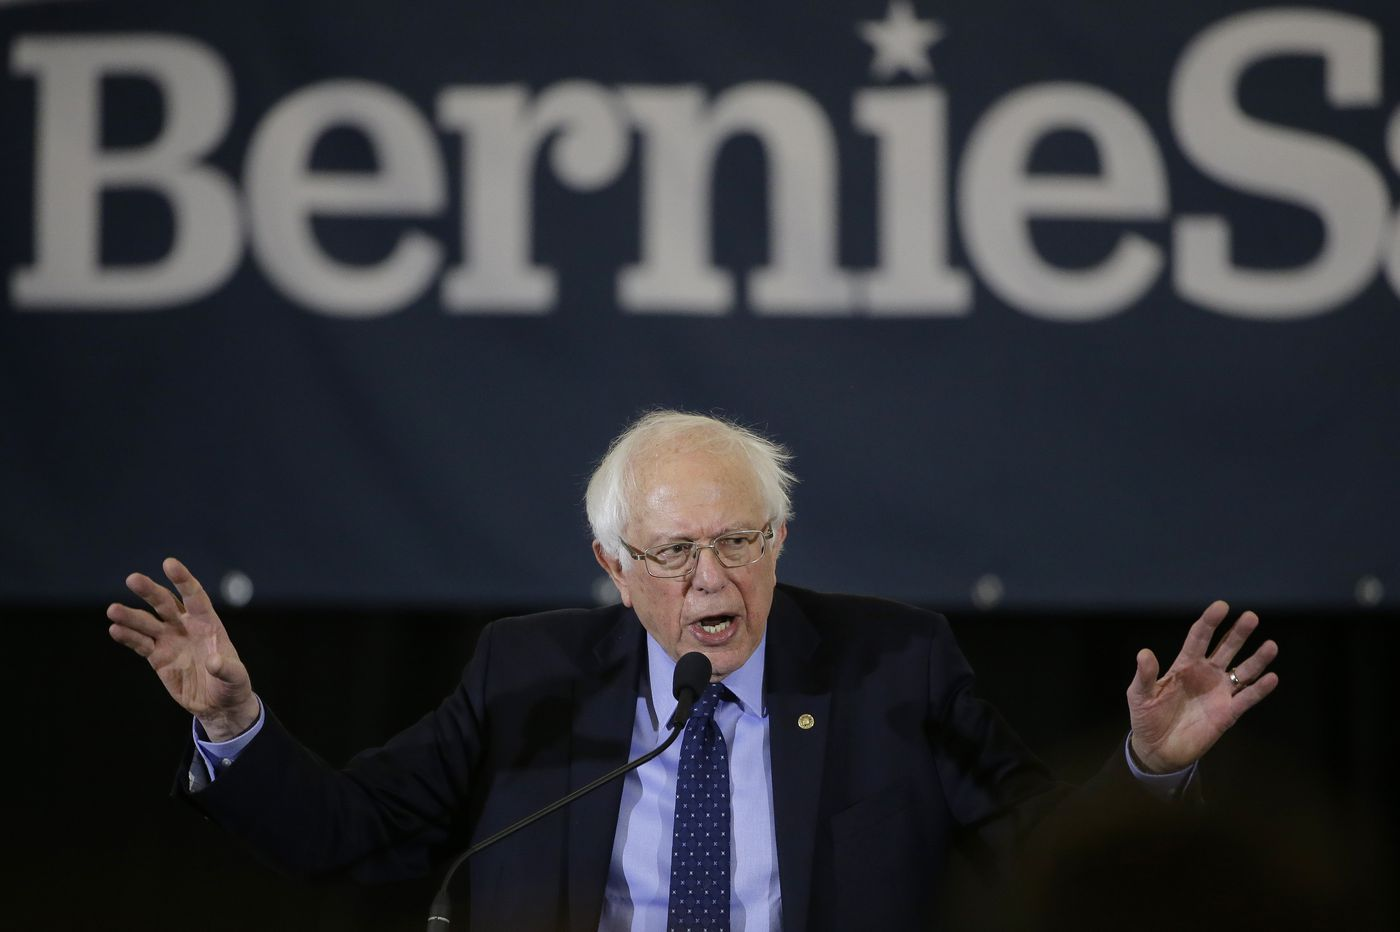 Bernie Sanders releases a decade of tax returns